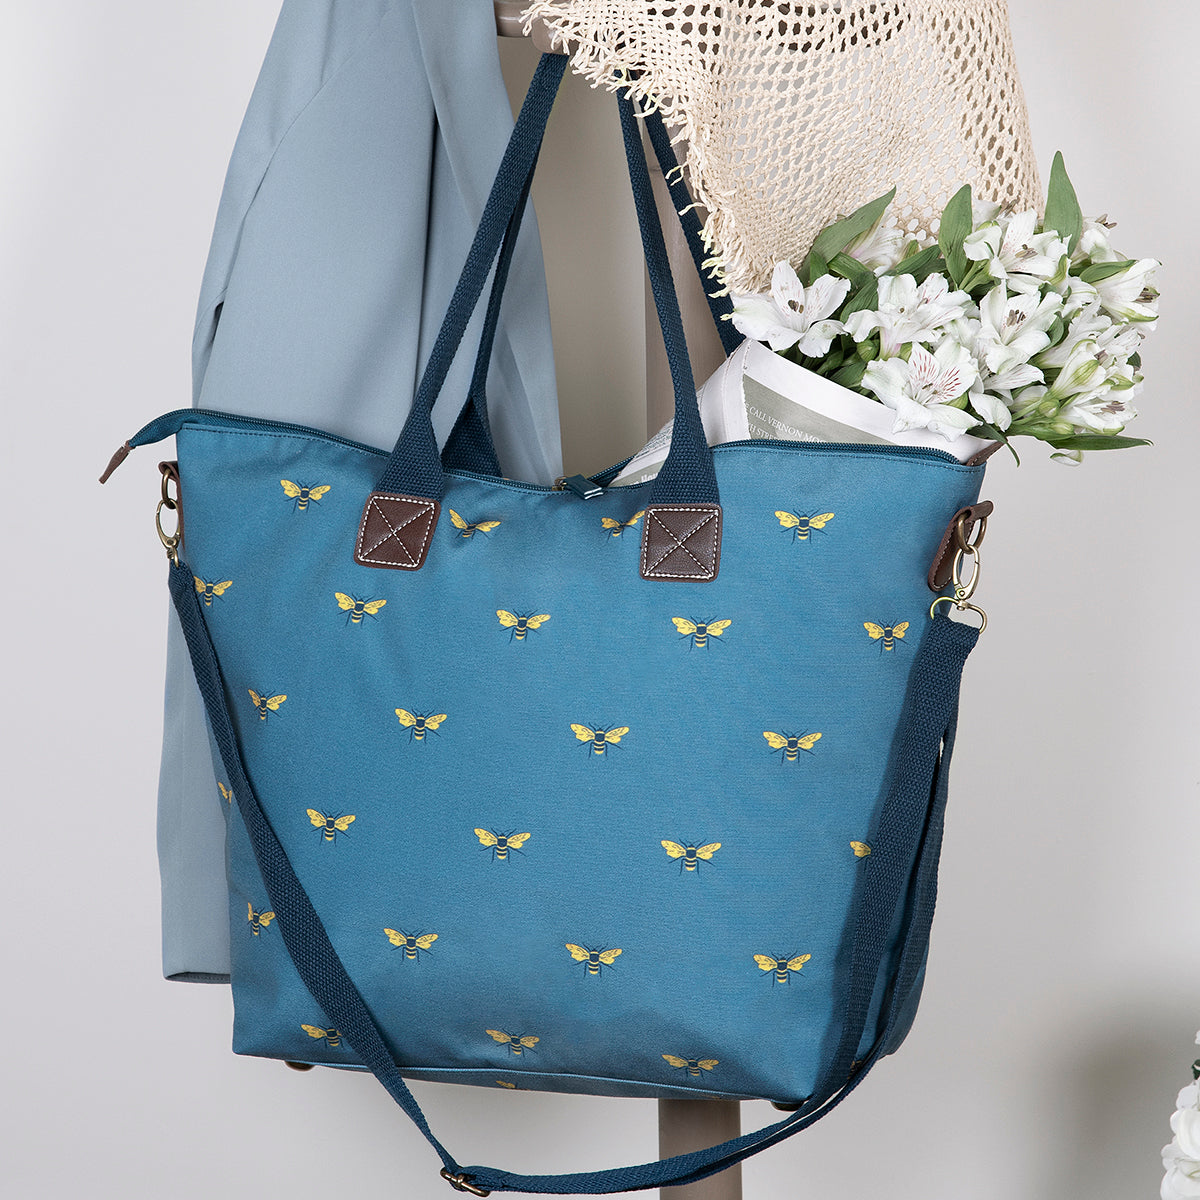 Teal coloured bag, gift idea for her by Sophie Allport